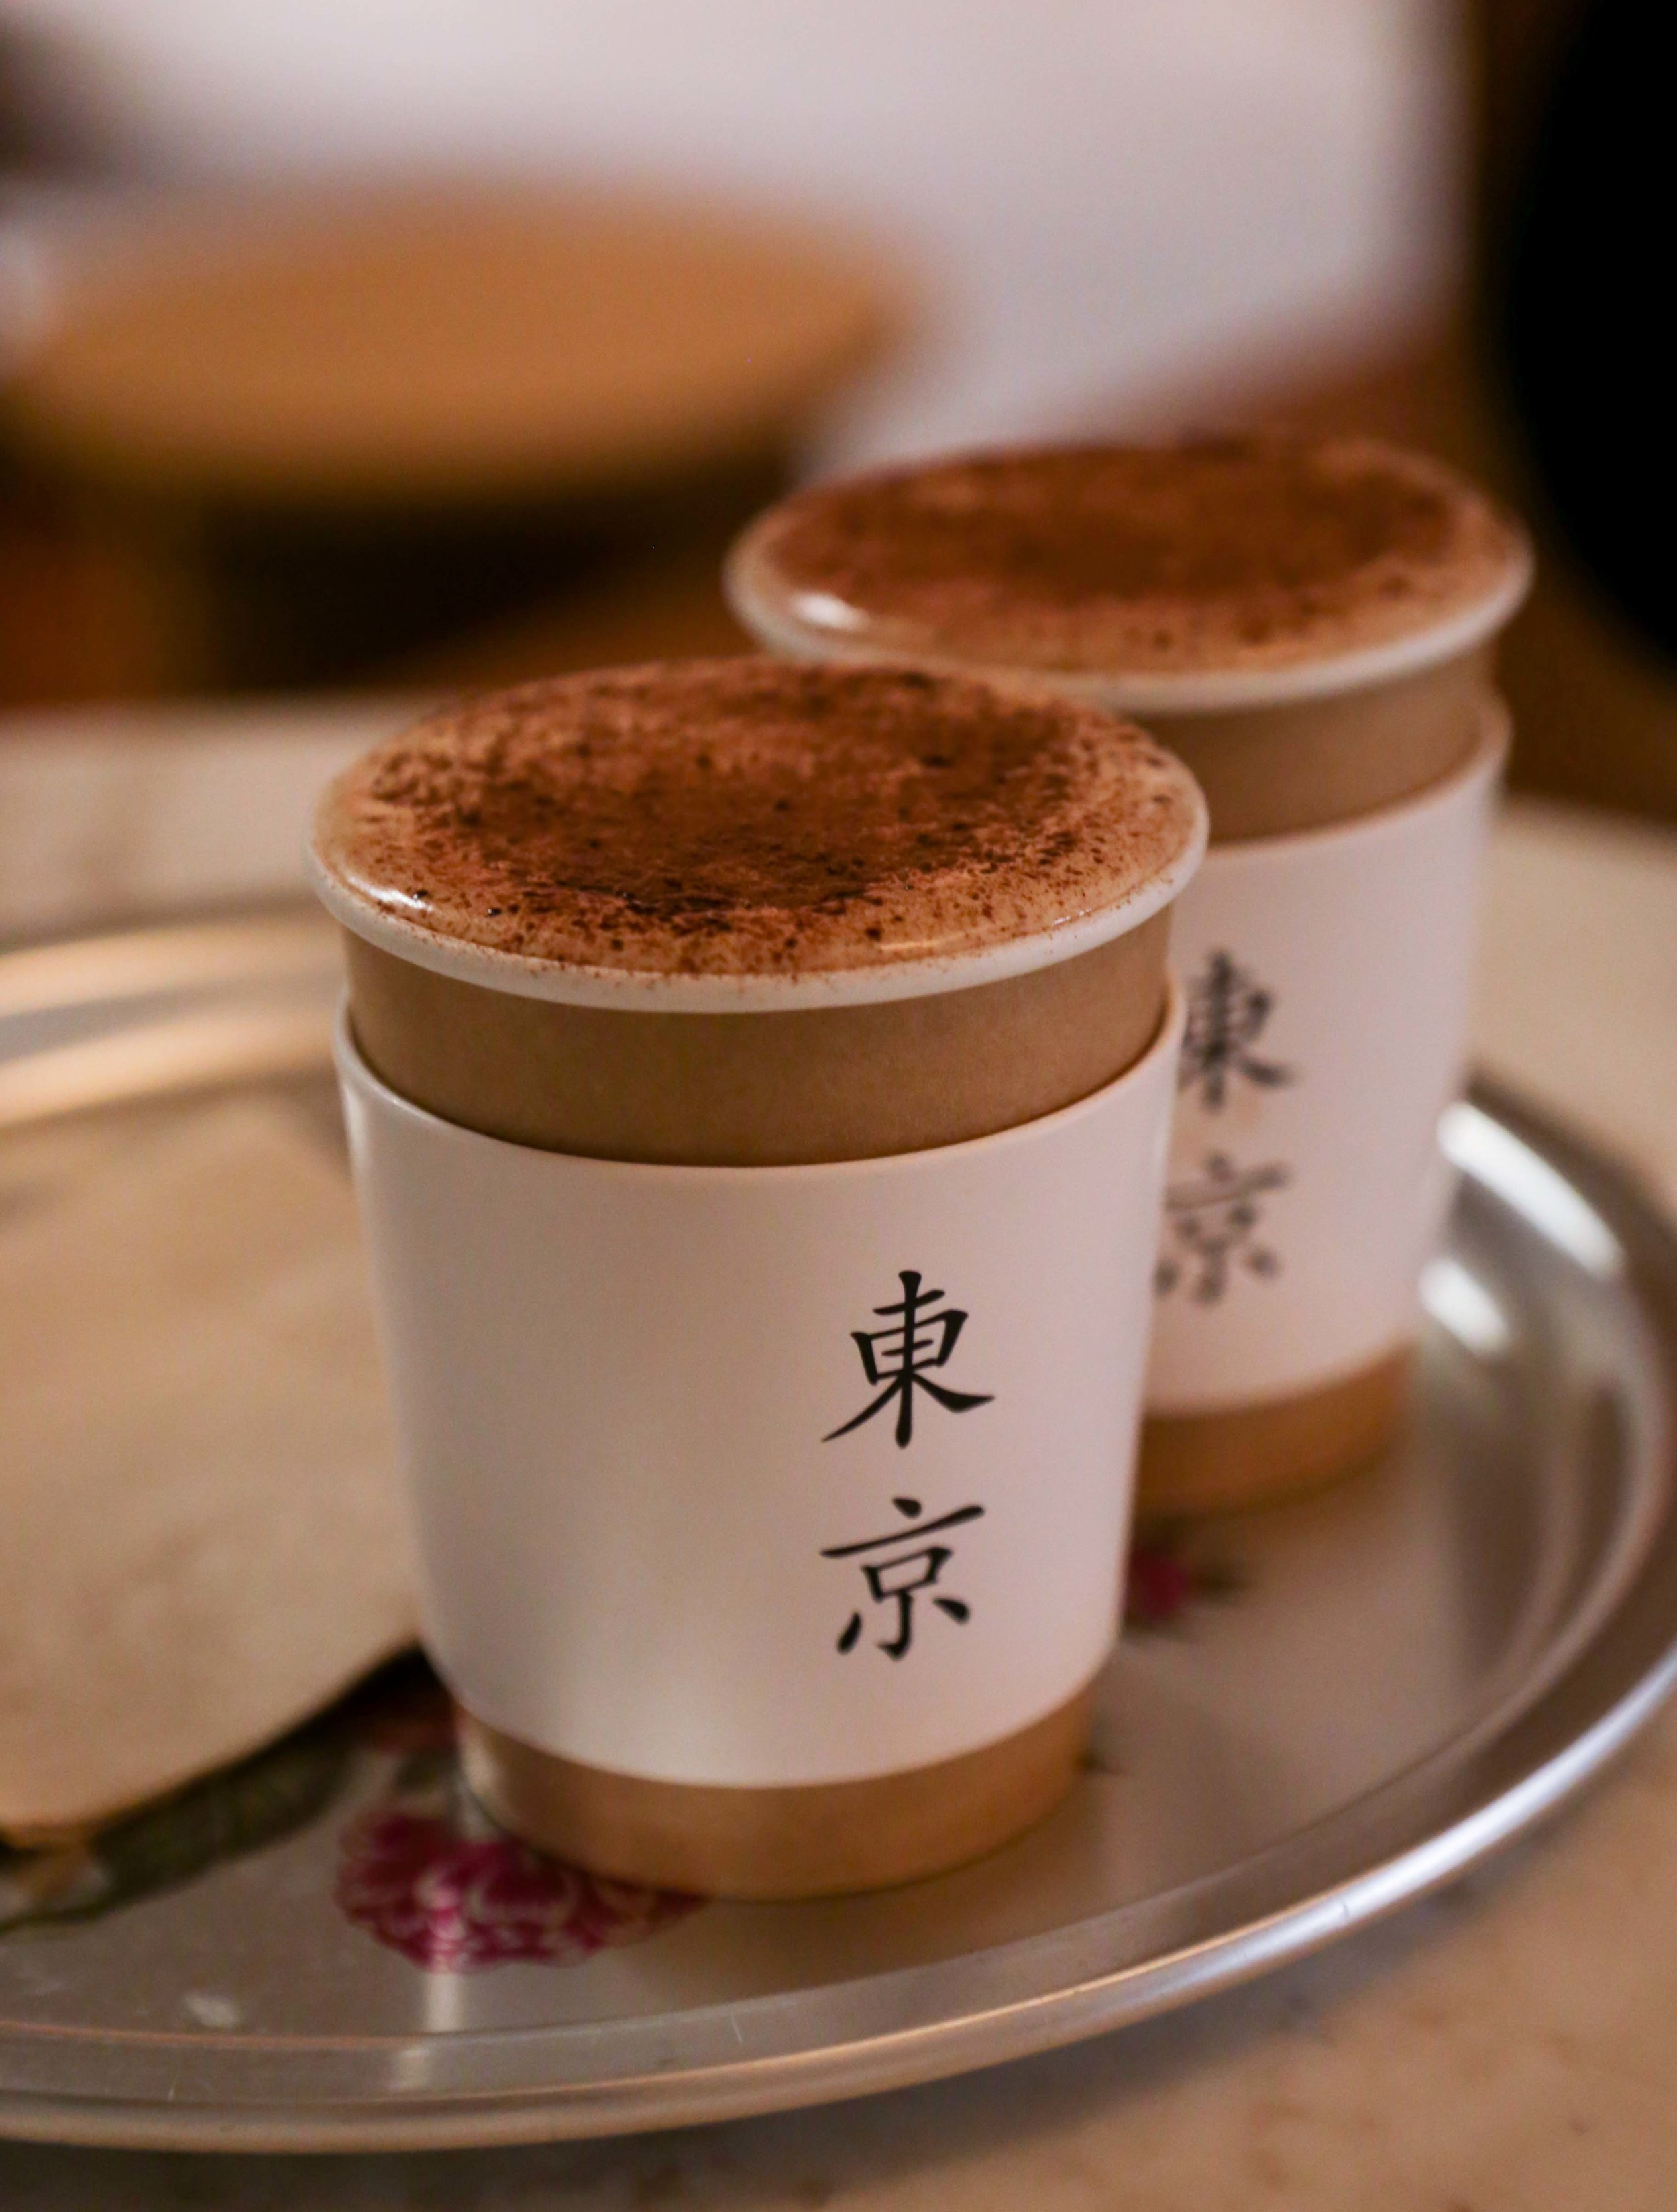 Dong-Gyeong Coffee's Hot Chocolate